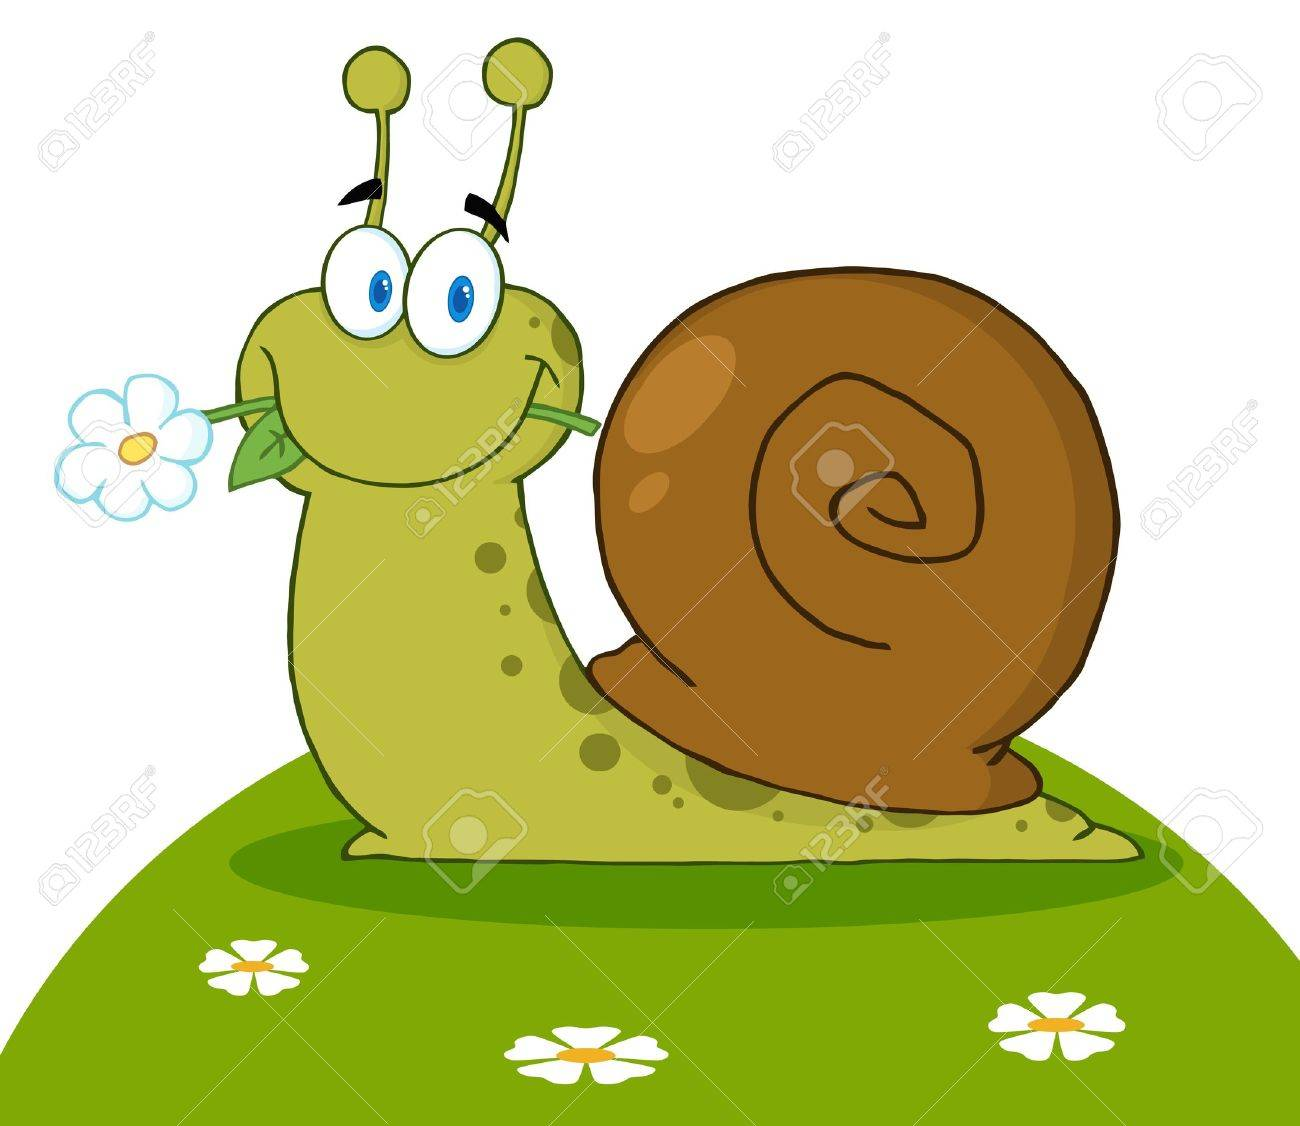 Happy Snail With A Flower In Its Mouth On A Hill Stock Vector - 9152418